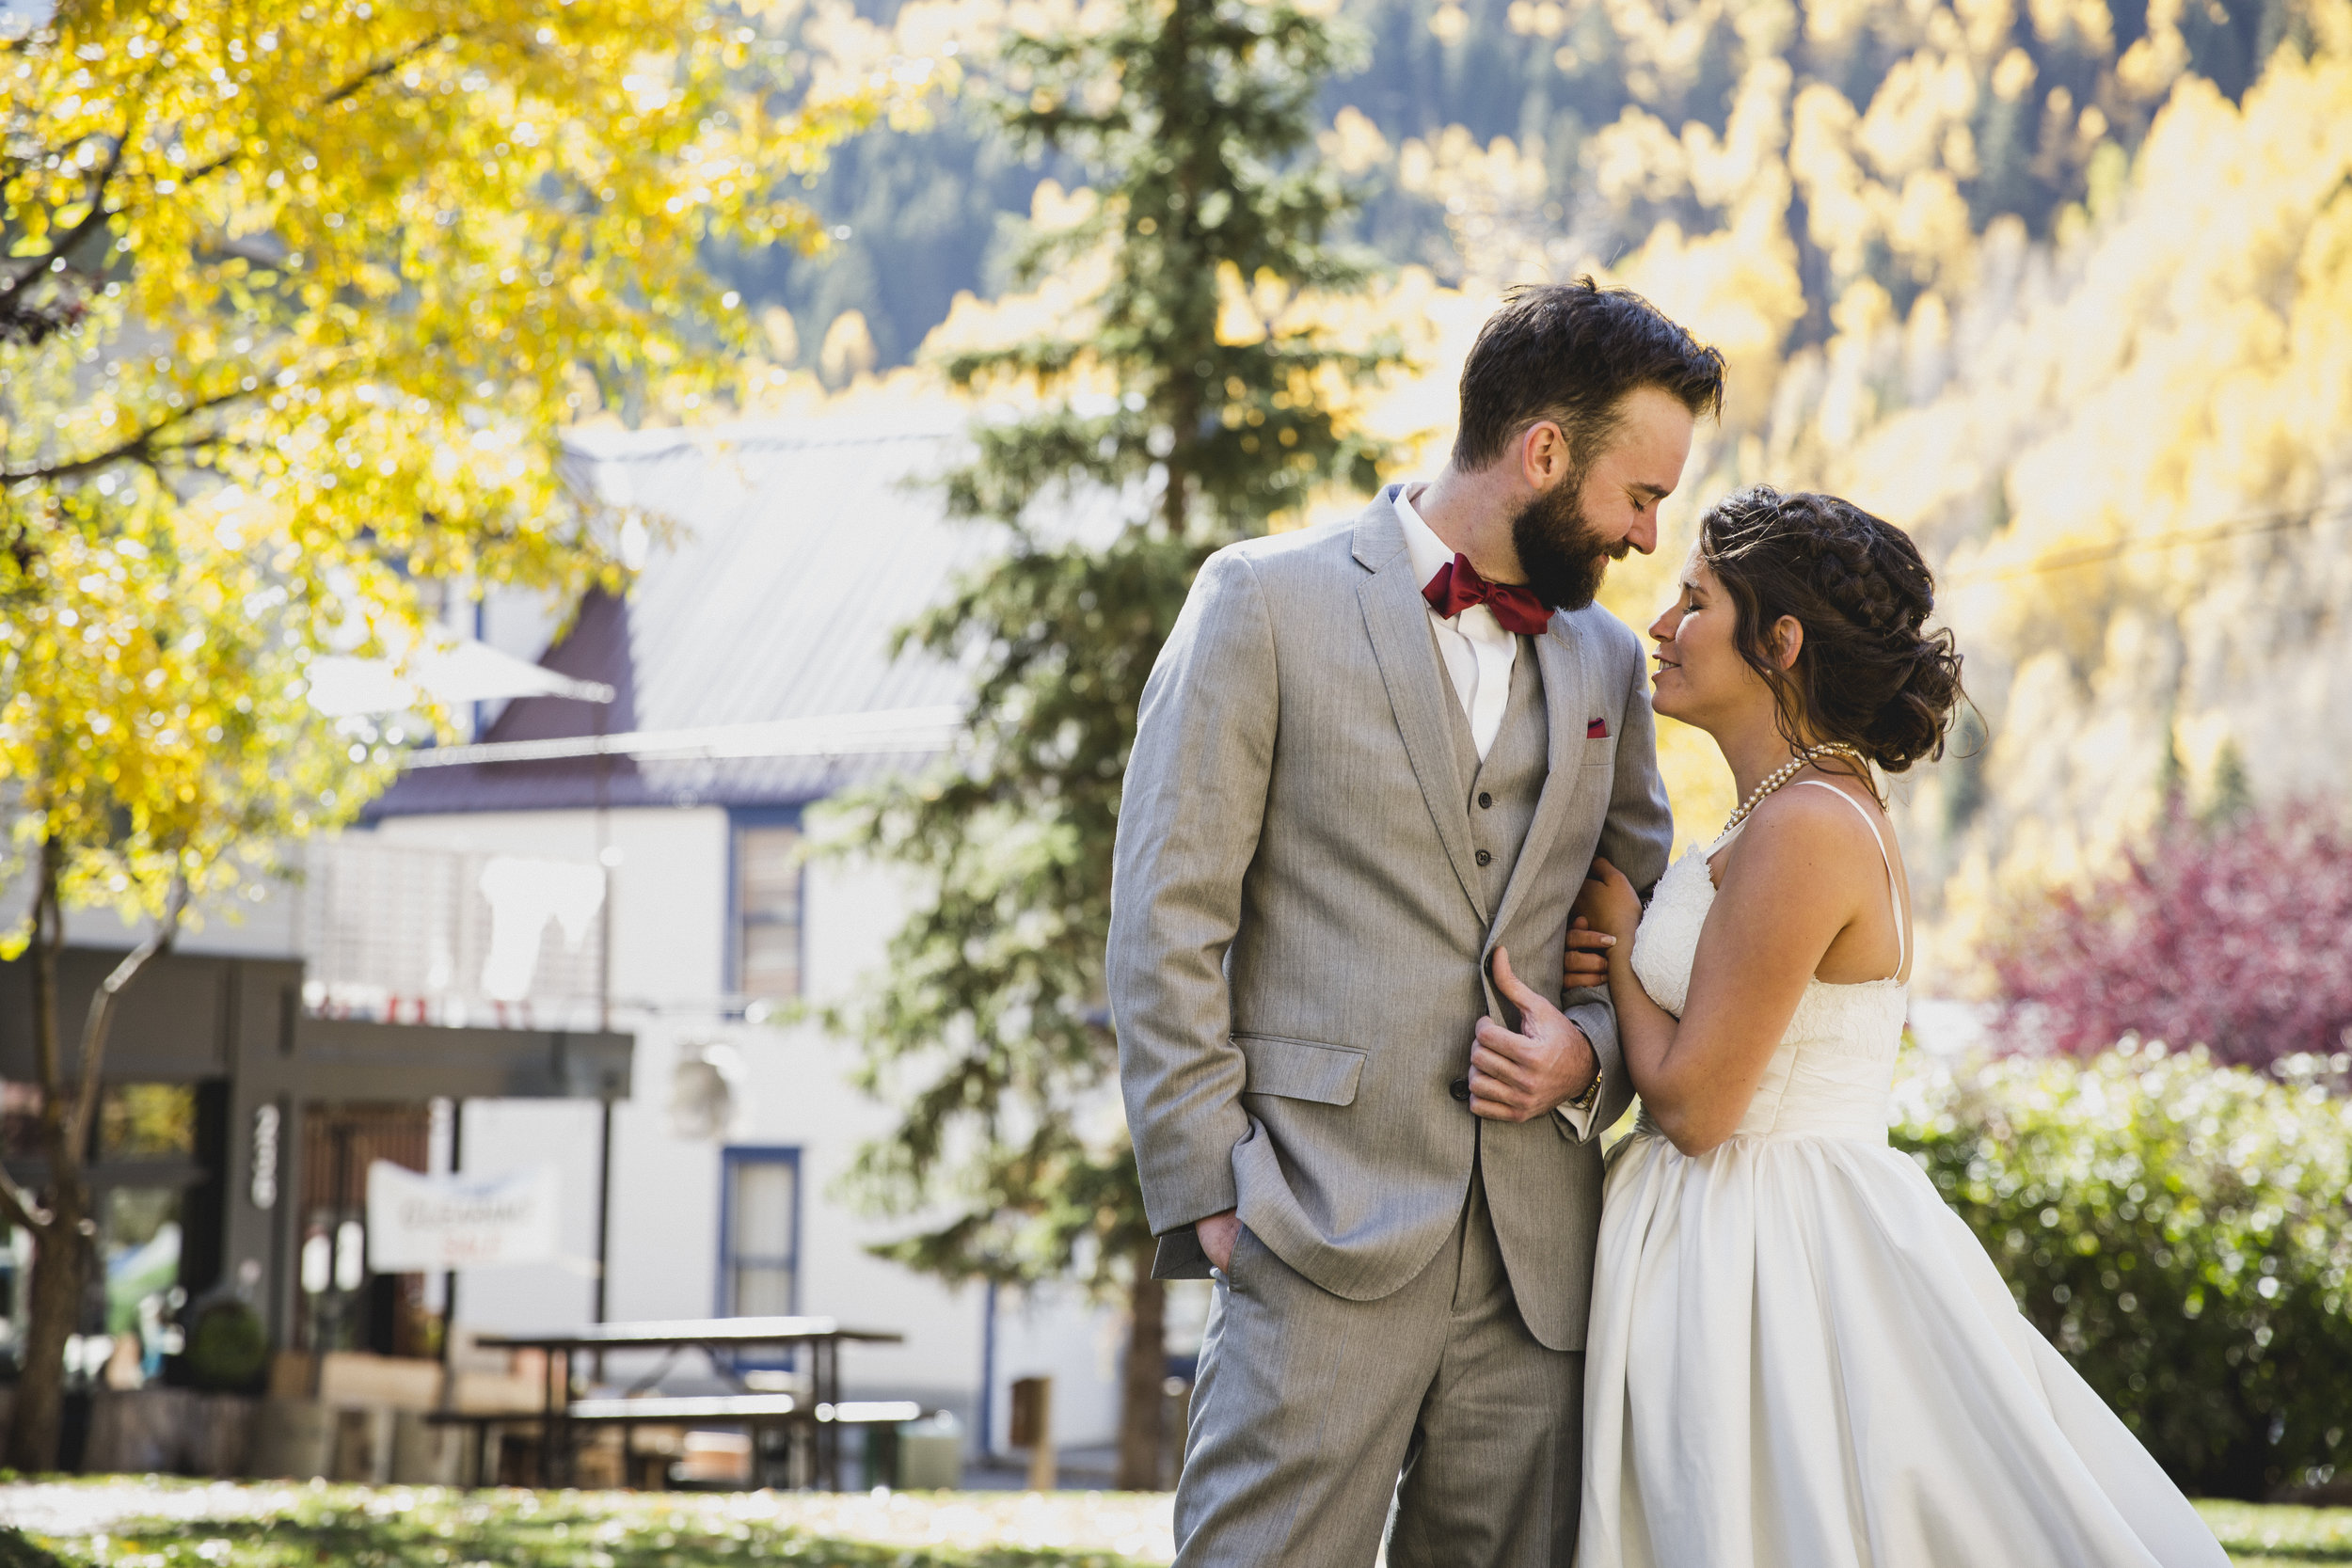 NE-LeahandAshtonphotography-Telluride-Wedding-Photography-8941.jpg